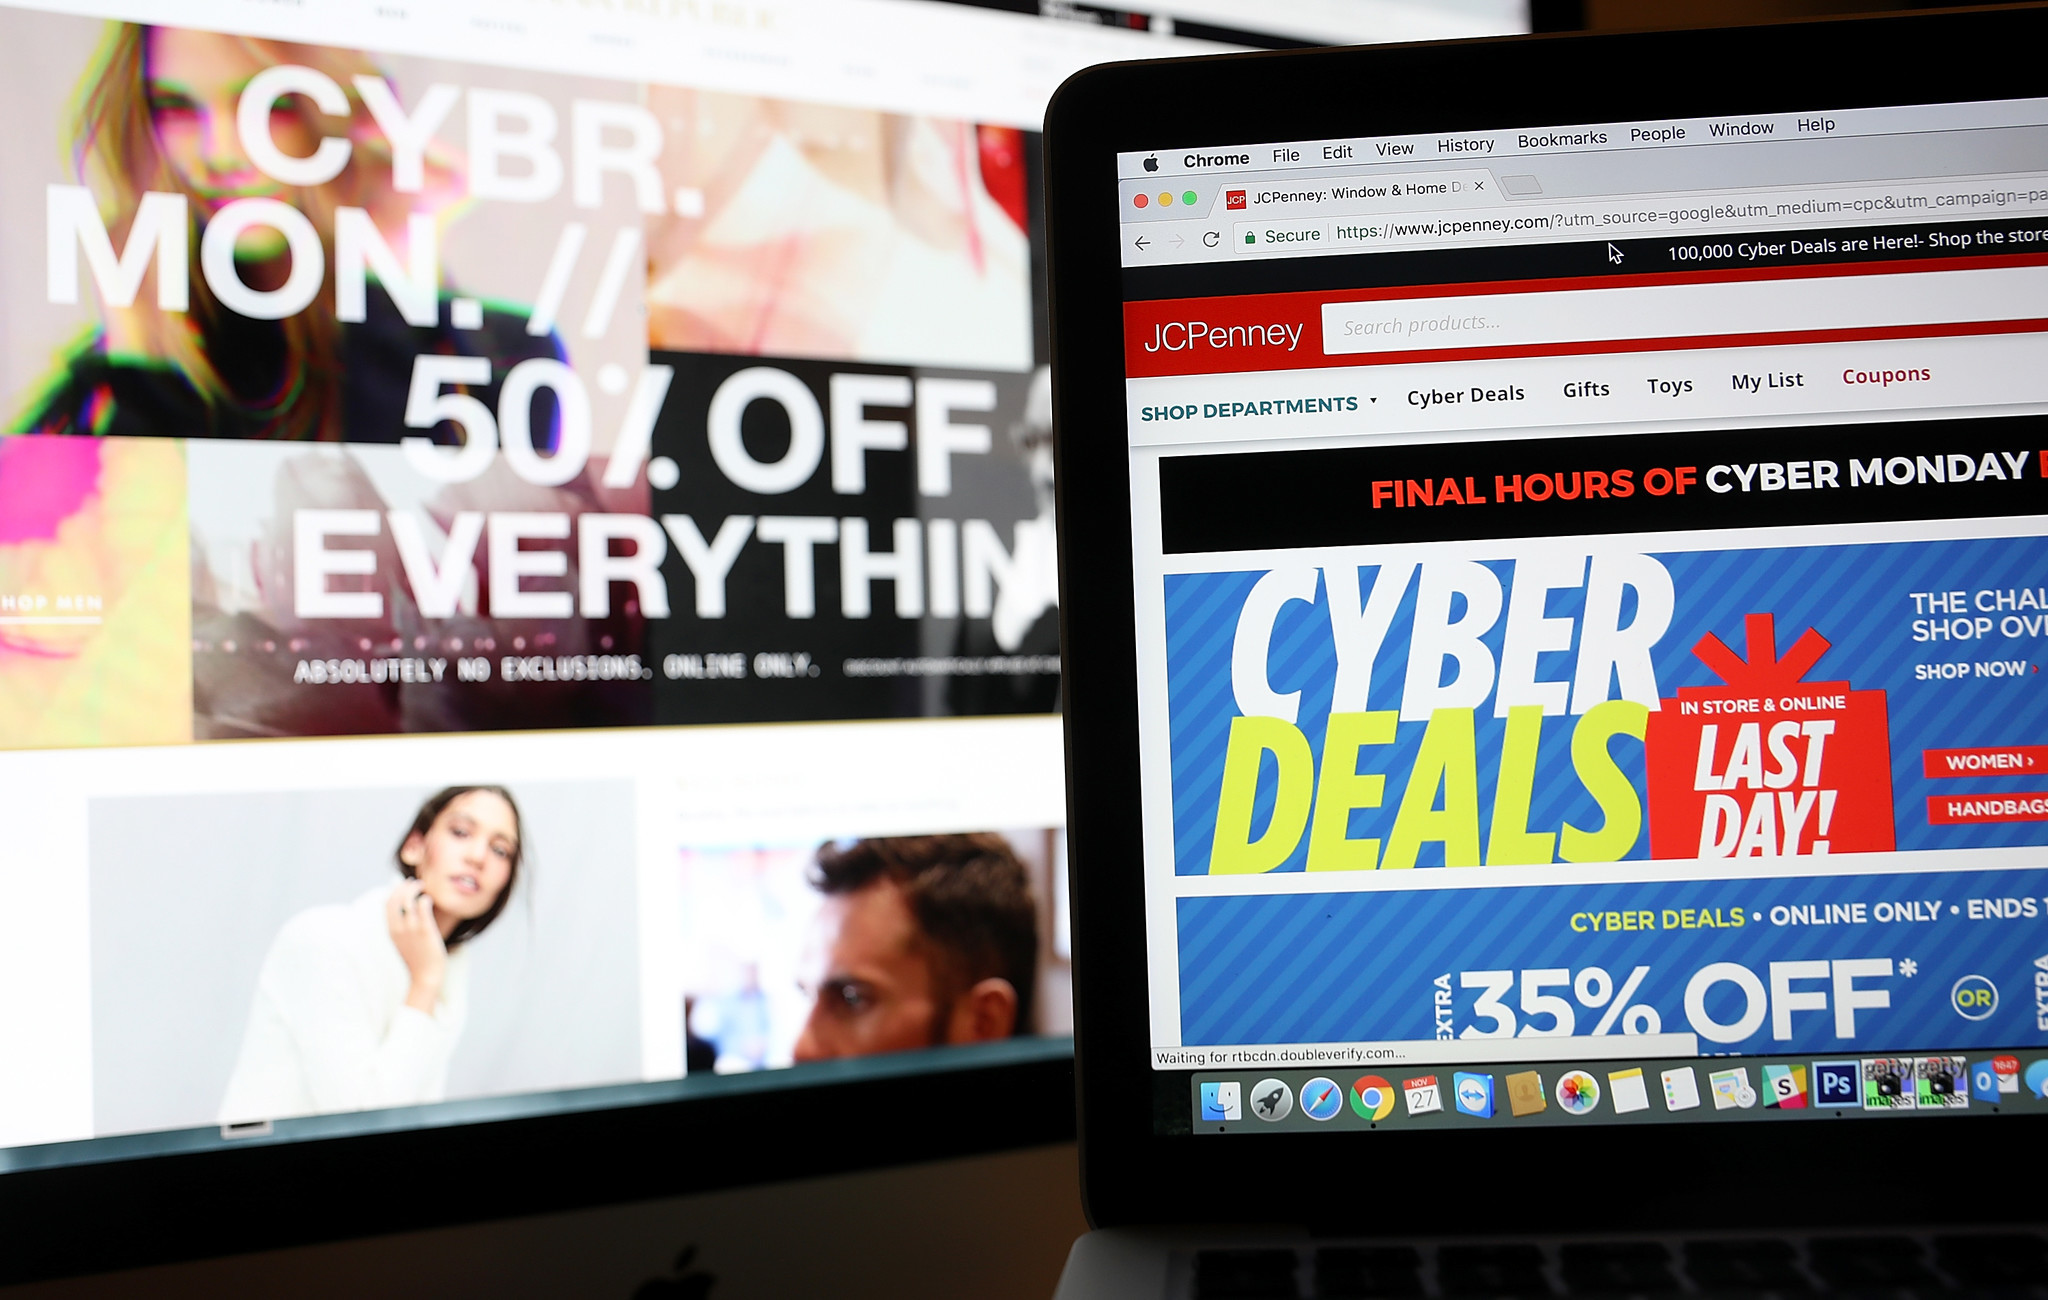 Best Cyber Monday deals: from TVs to iPads to specialty handmade crafts